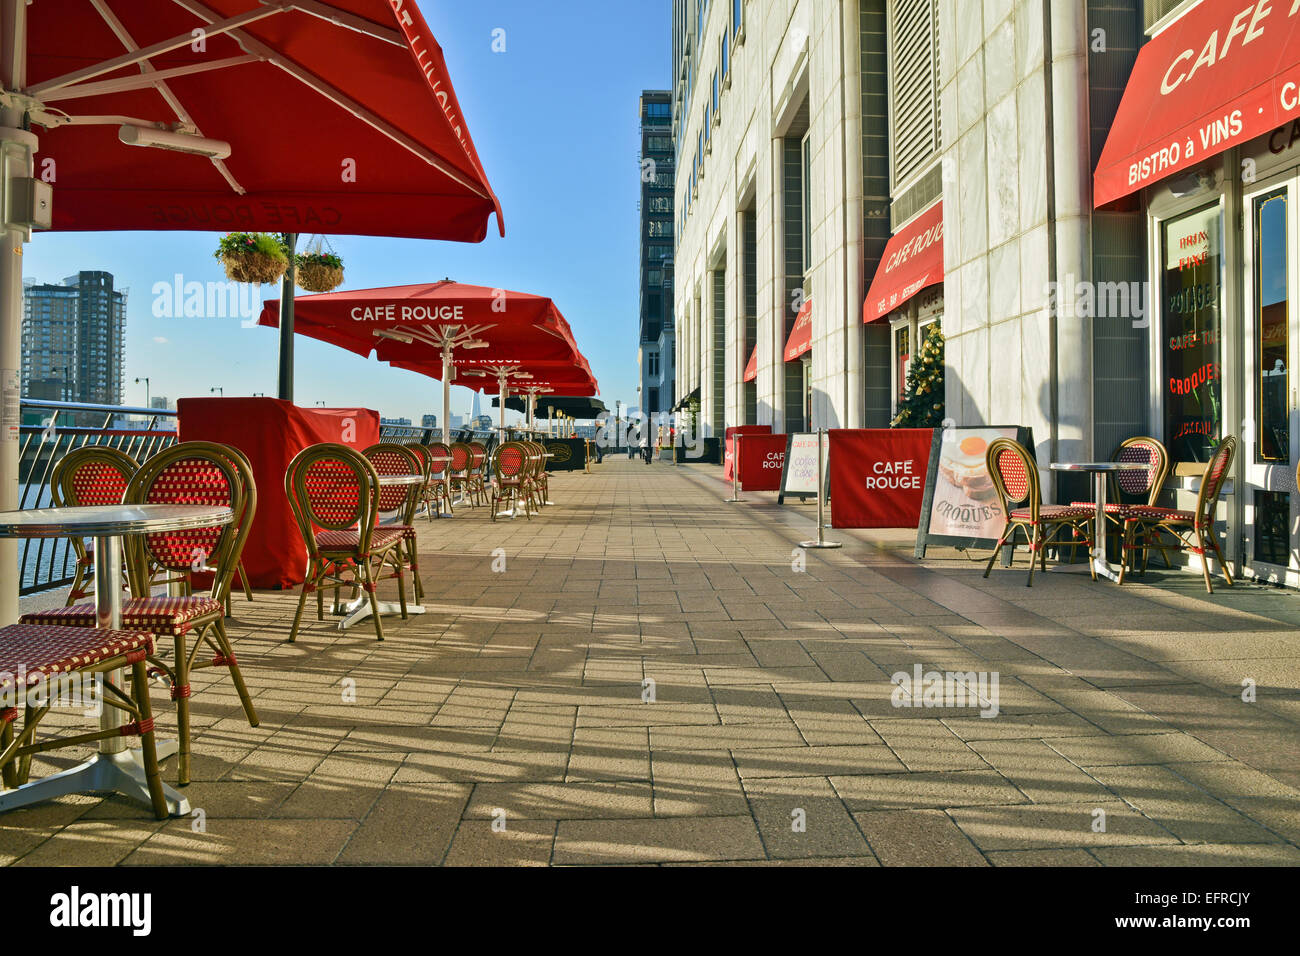 Roques Centre Commercial Couple Eating Out London Stock Photos Couple Eating Out London